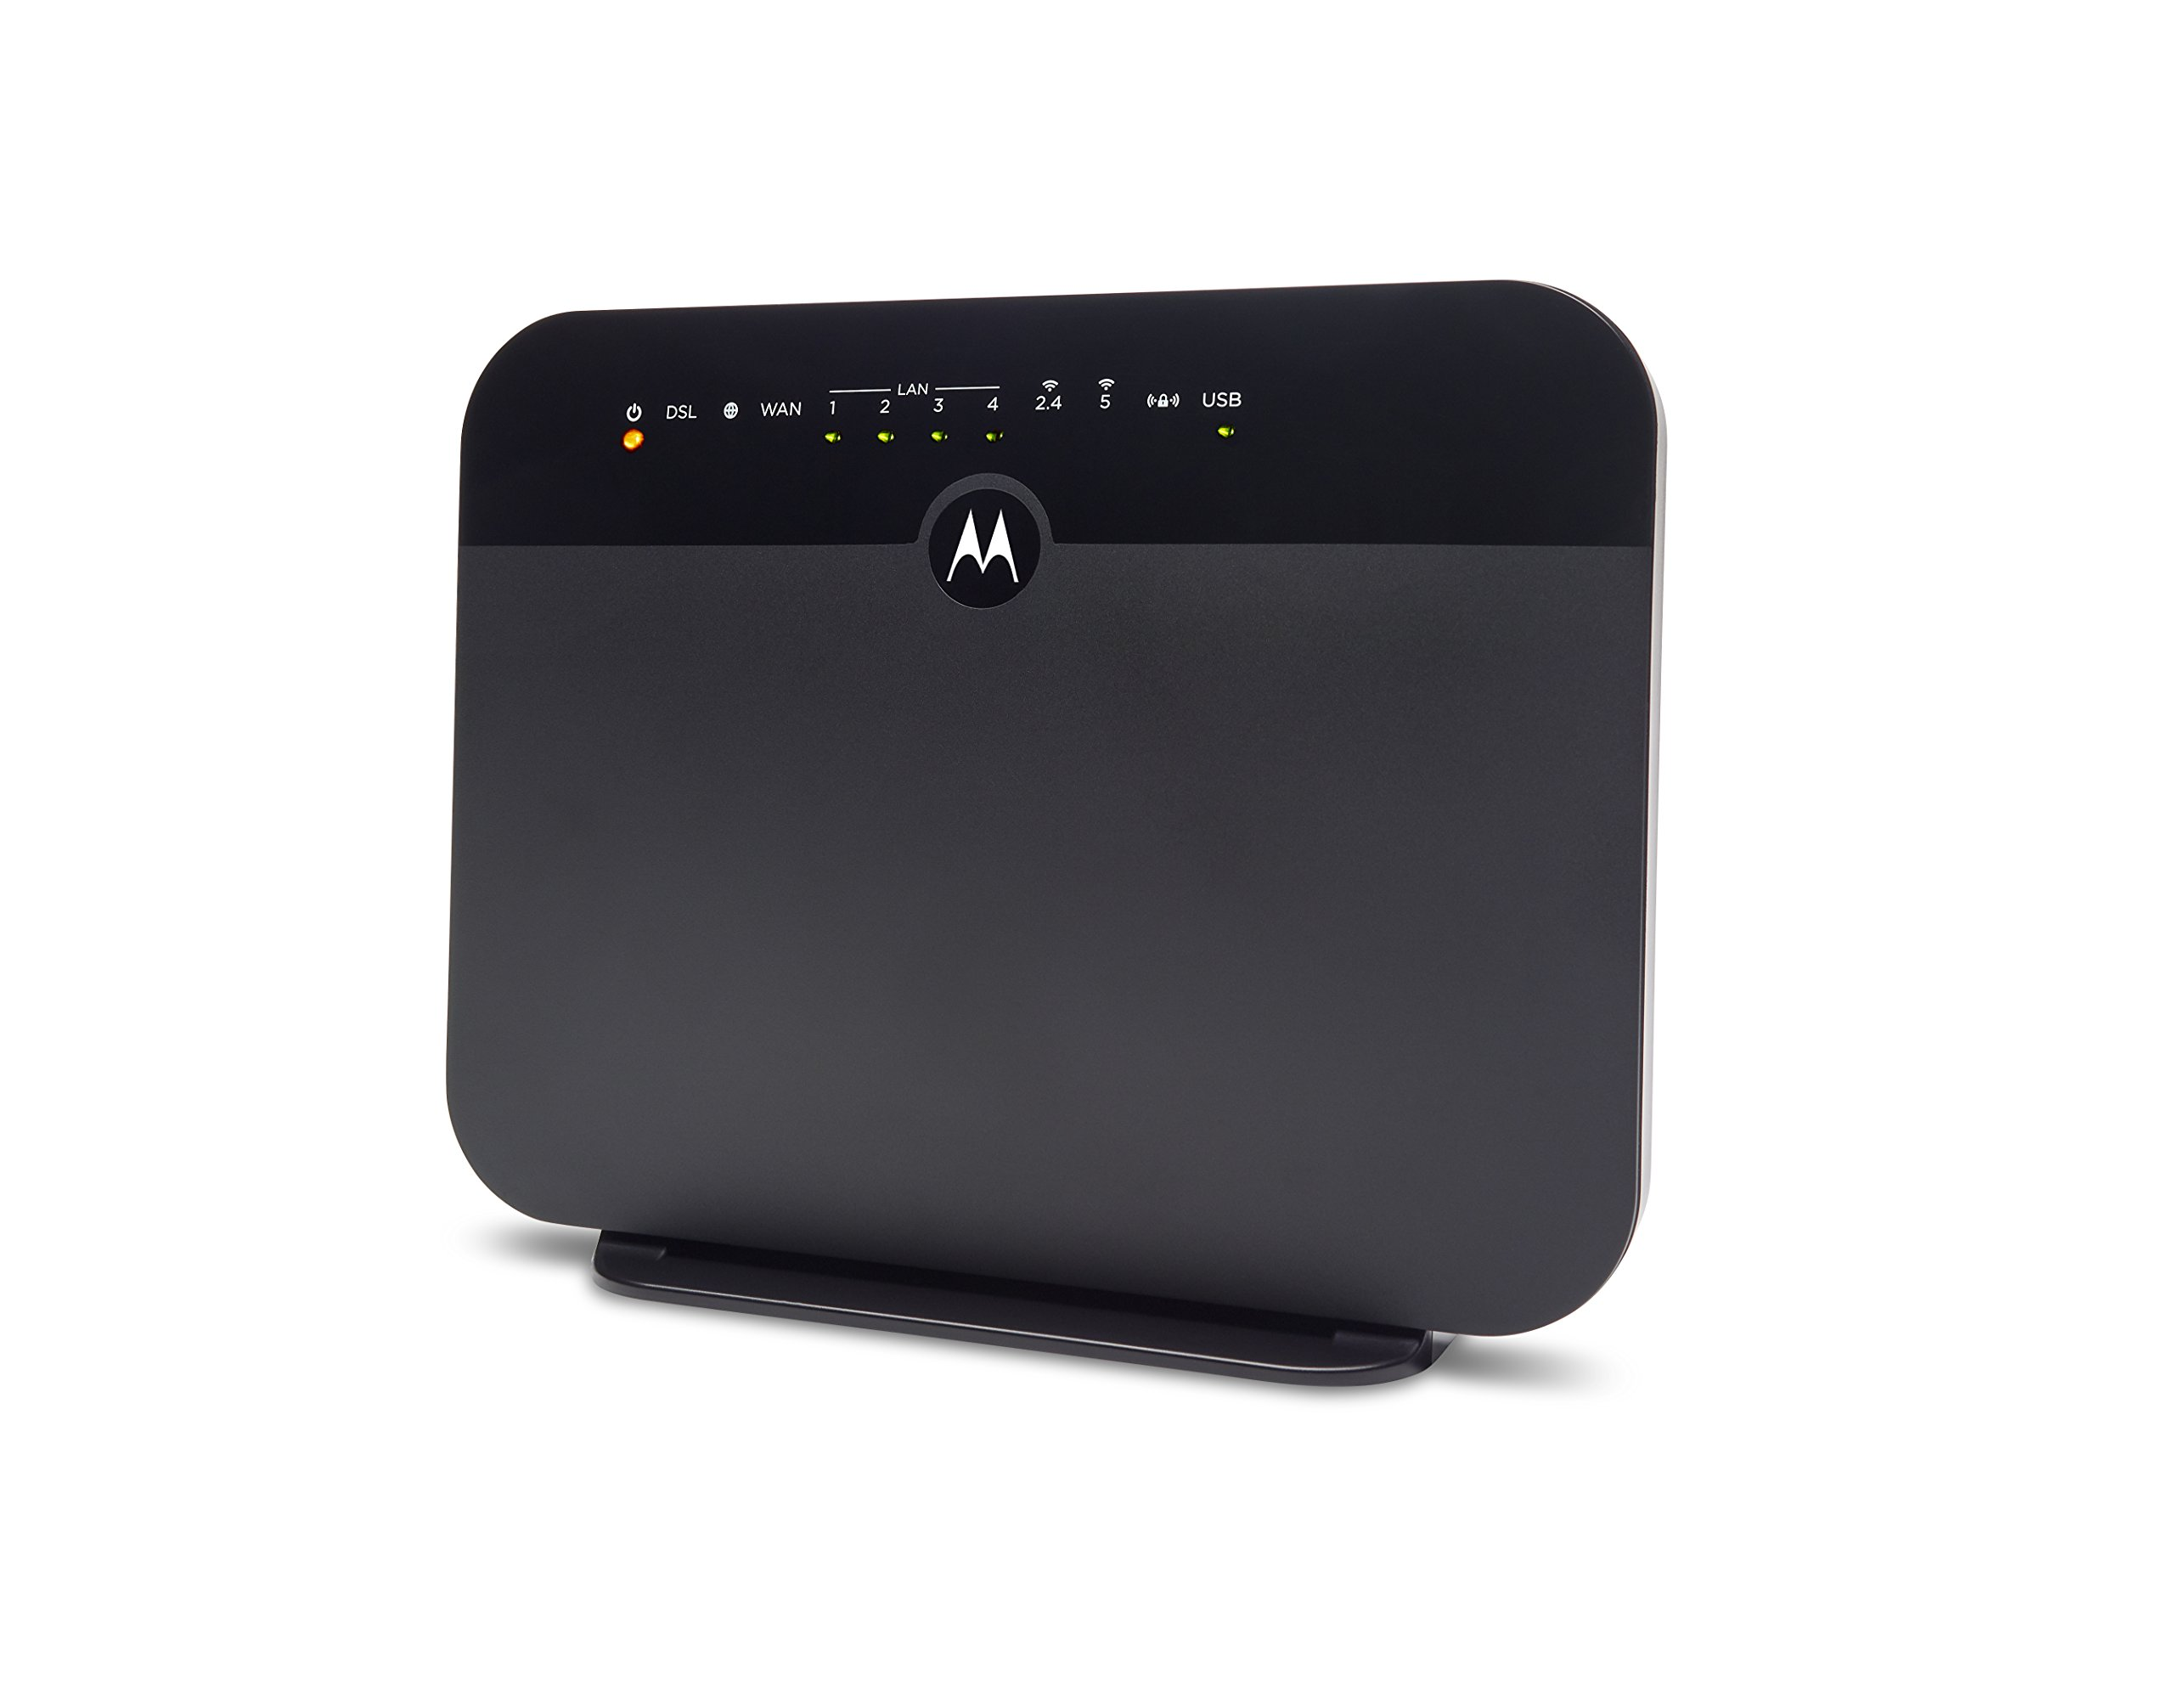 MOTOROLA VDSL2/ADSL2+ Modem + WiFi AC1600 Gigabit Router, Model MD1600, for Non-Bonded, Non-Vectoring DSL from CenturyLink, Frontier, and Some Other DSL Providers 1 IMPORTANT: MODEL MD1600 DOES NOT WORK WITH BONDED VDSL, BONDED ADSL, OR VDSL VECTORING. PLEASE READ THE CHECKLIST in the product images on this page before purchasing this product. If you're still not sure whether you have the right type of DSL service, BE SURE TO ASK YOUR SERVICE PROVIDER BEFORE purchasing this product. MODEL MD1600 IS NEVER COMPATIBLE WITH VERIZON OR AT&T SERVICES. The MD1600 IS NEVER compatible with Comcast, Charter Spectrum, Cox, or other cable services The MD1600 is a great choice for most ADSL and VDSL services from CenturyLink, Frontier, Windstream, TDS Telecom, and Fairpoint. .It combines a VDSL2/ADSL2+ modem with a full-featured AC1600 WiFi Gigabit router to provide fast Internet to all your WiFi and Ethernet devices. DSL services use the telephone wiring in your home. Supplying your own modem typically saves $9.99 in modem rental fees for CenturyLink, and savings vary for other service providers. Built-in router includes four Gigabit Ethernet ports, AC1600 wireless, a firewall, WPA/WPA2 wireless security, IPv4 and IPv6 support, and Virtual Private Network (VPN) capability. You can plug a USB storage device into the MD1600's USB 2.0 host port for Network Attached Storage (NAS) which supports DLNA Media Sharing.